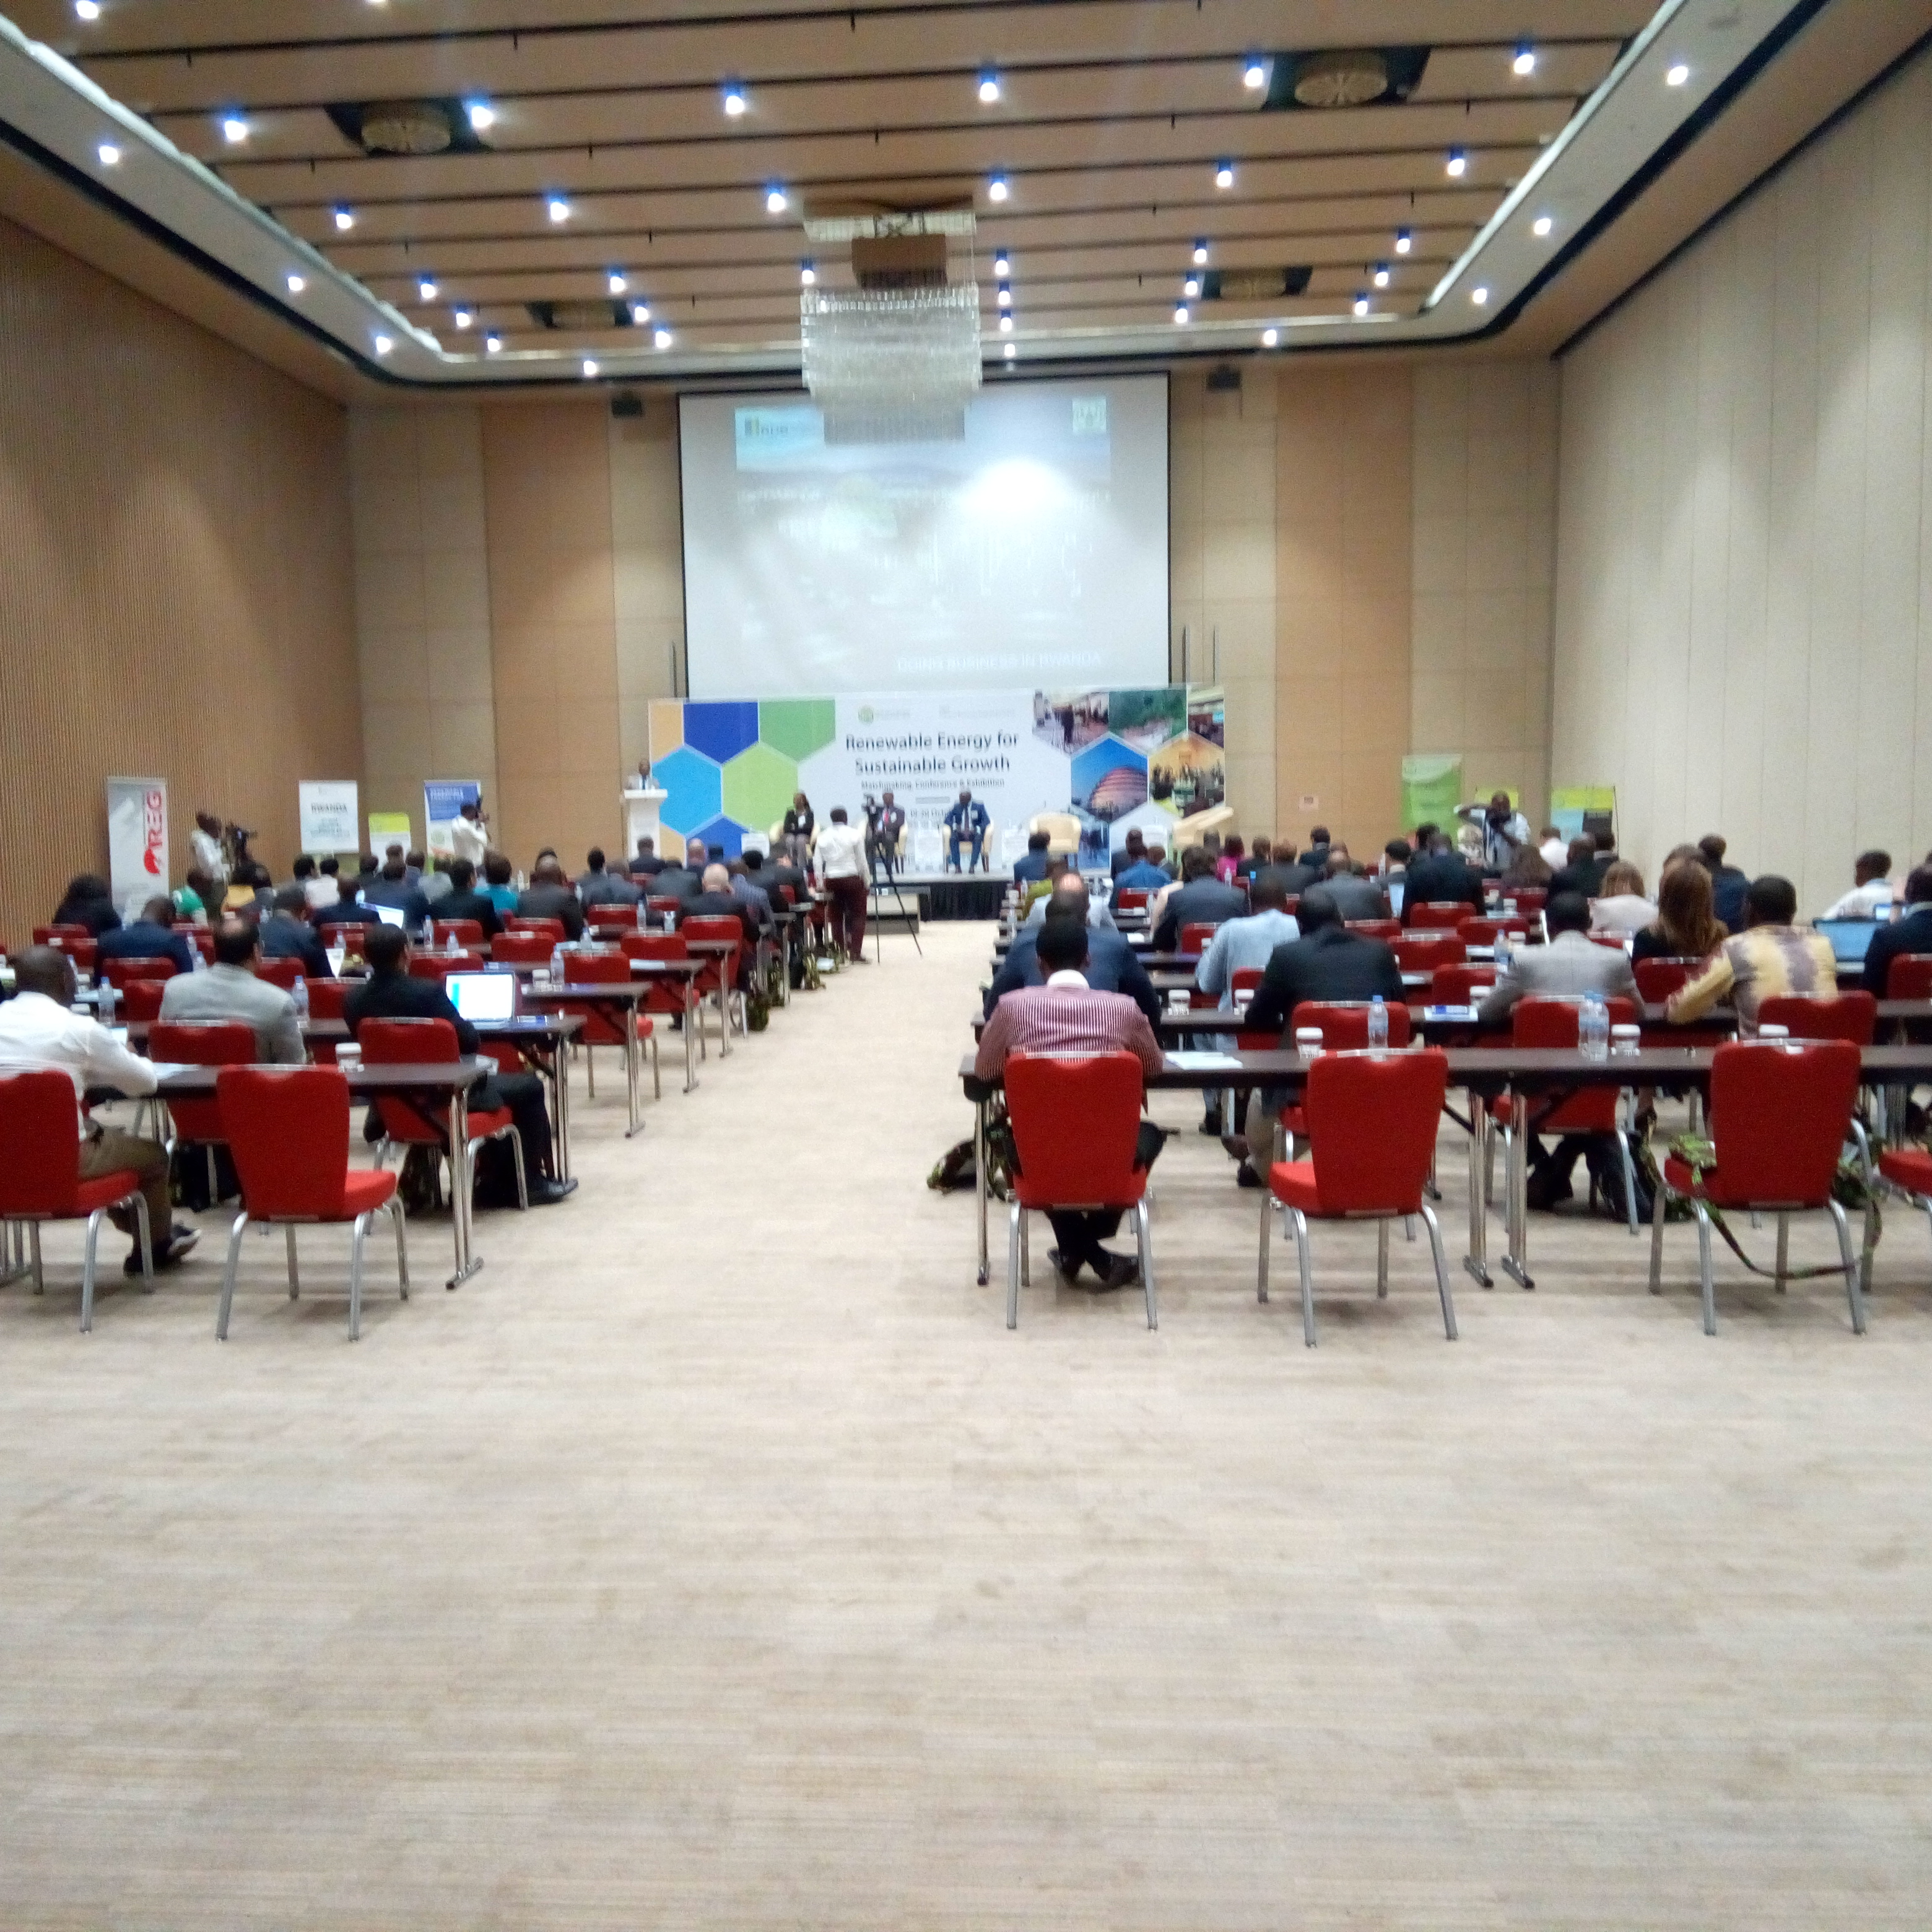 Renewable Energy for Sustainable Growth Conference